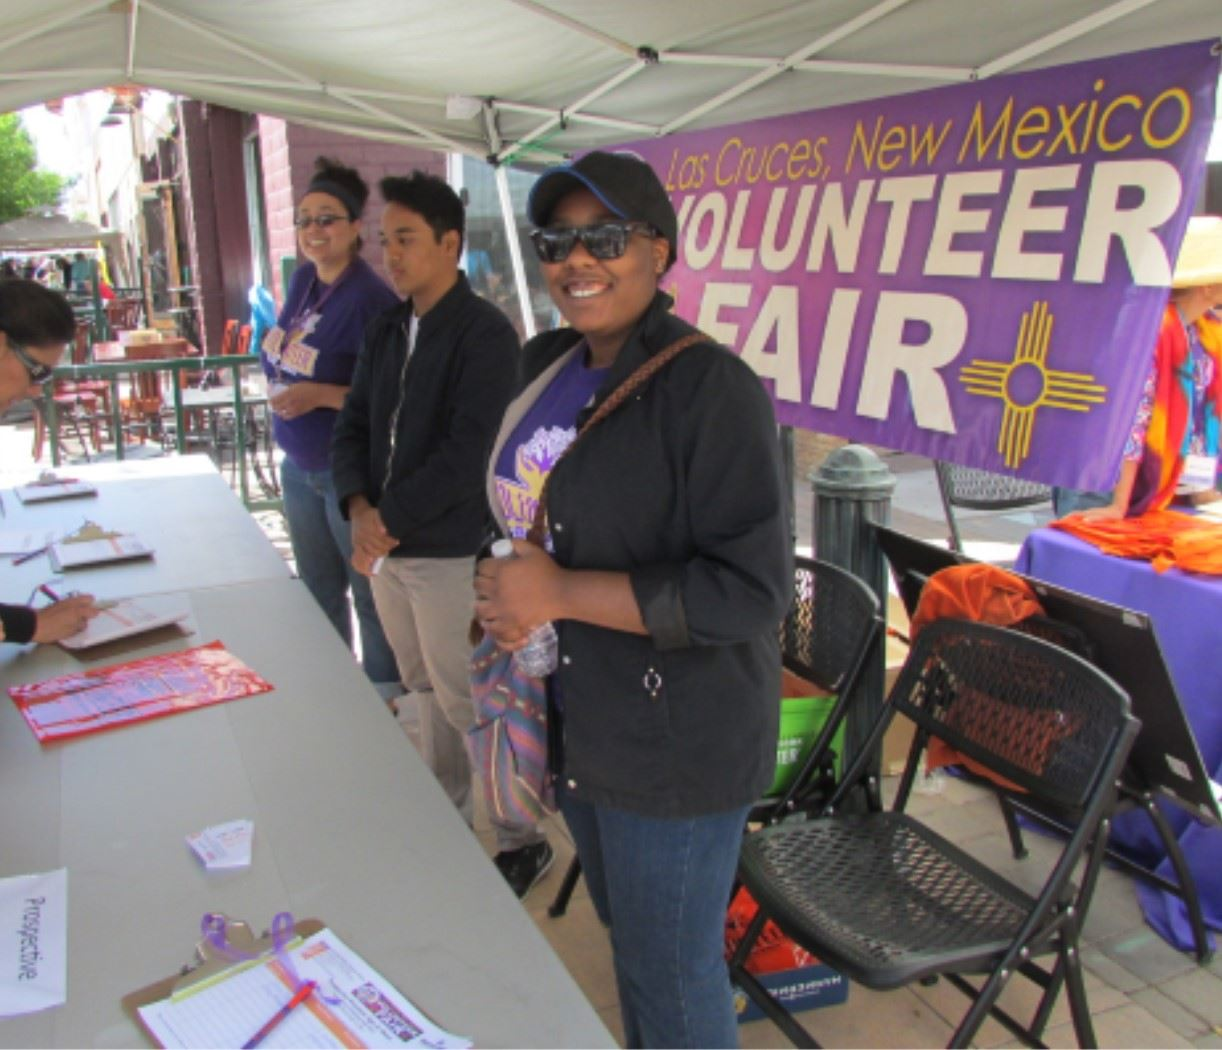 People pose a the Volunteer Fair booth